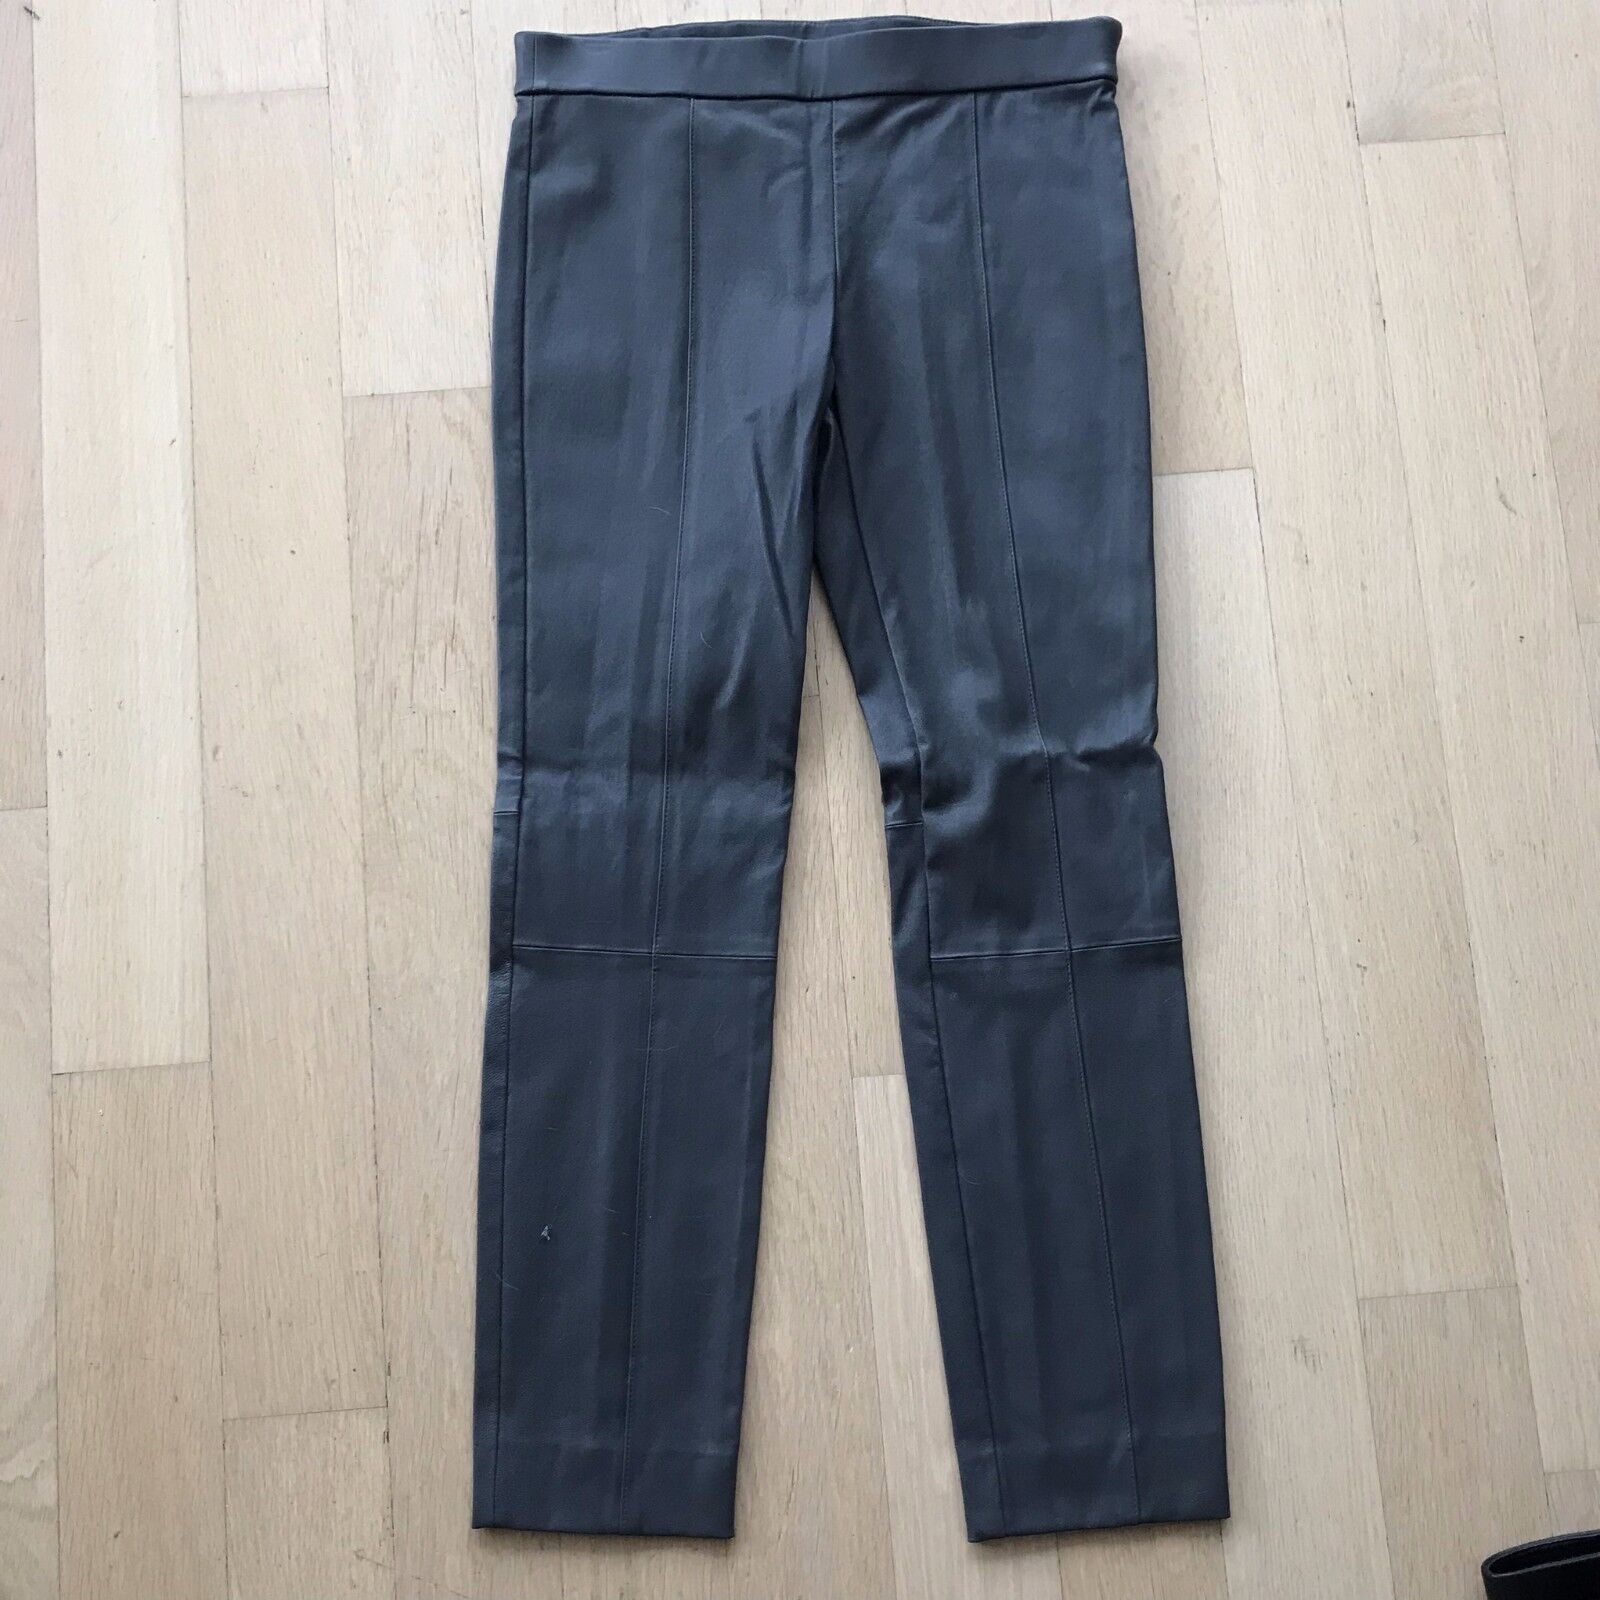 Women's Grey Spilt Hem Leather Pants Size M